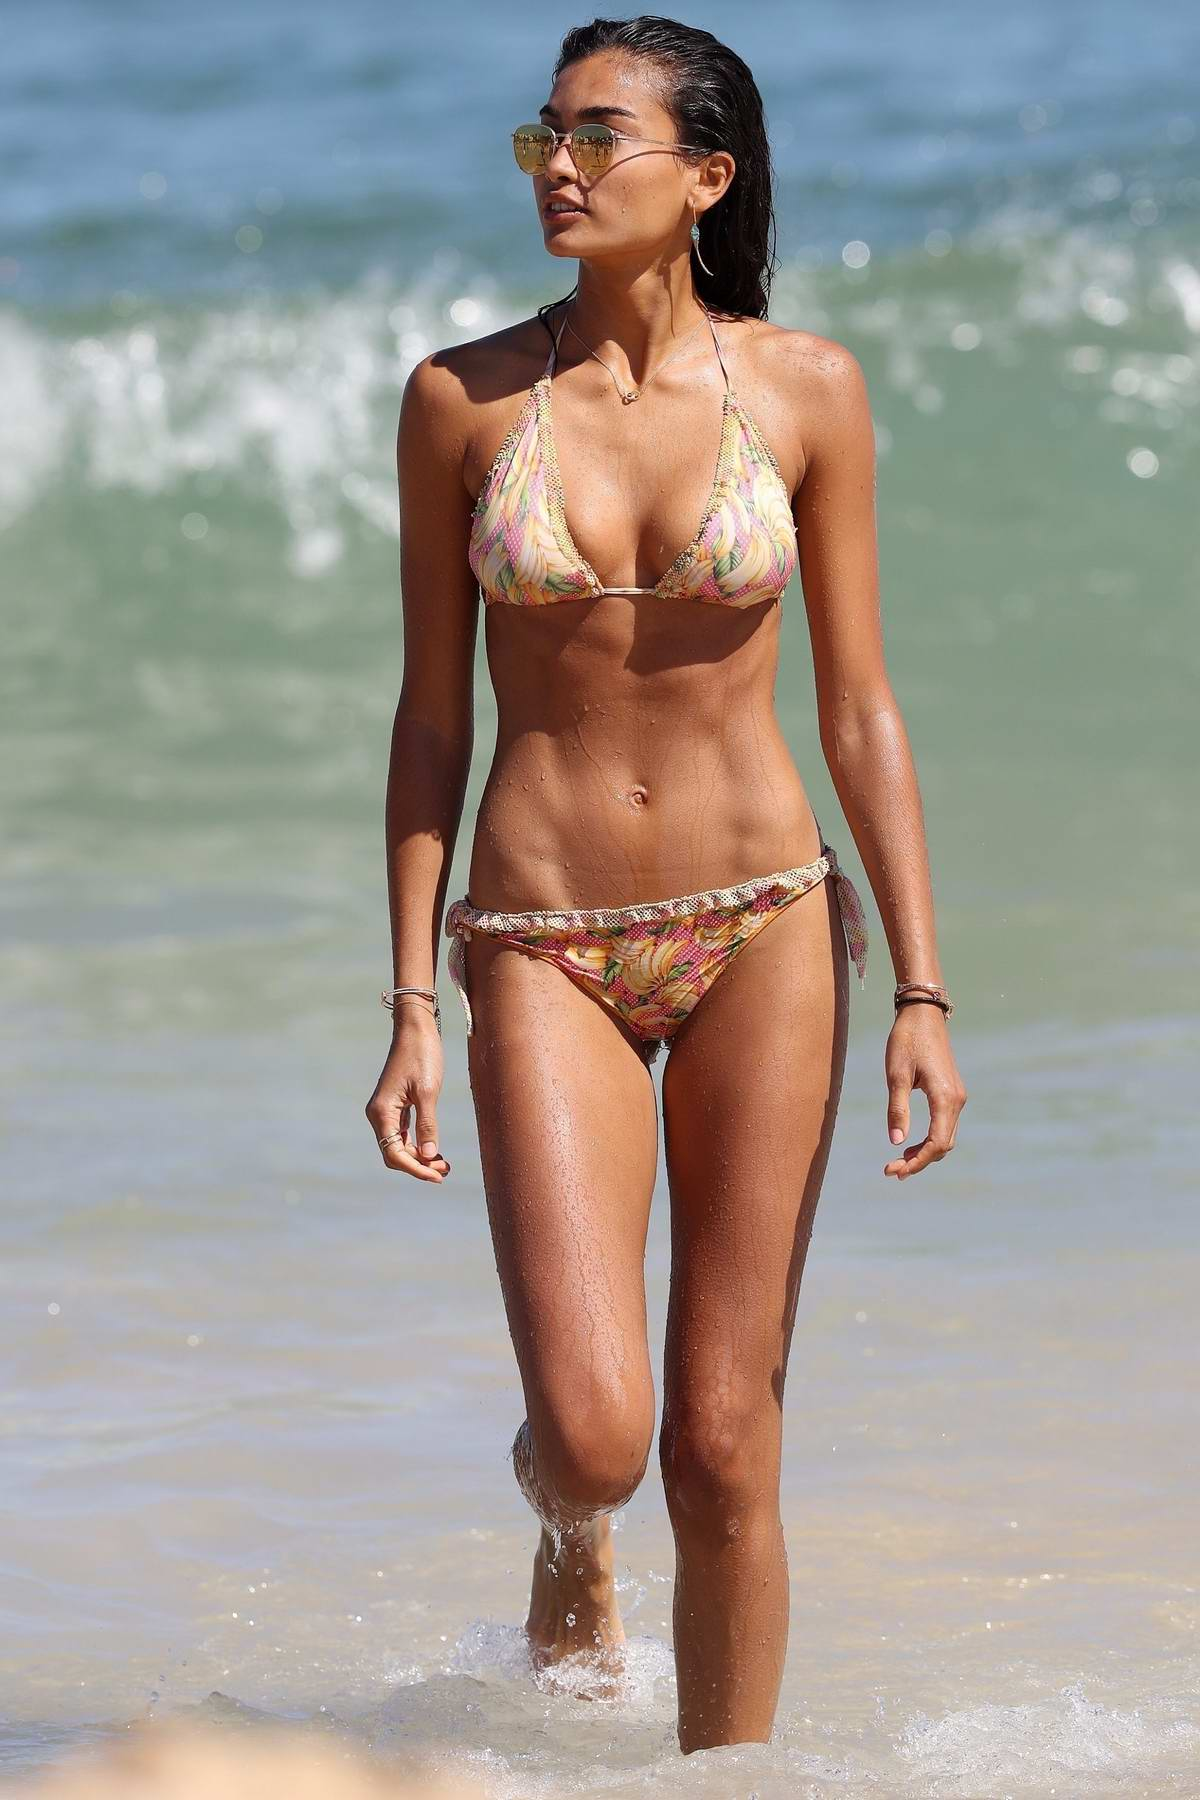 Kelly Gale in a bikini enjoying a beach outing with her partner in Bondi, Sydney, Australia